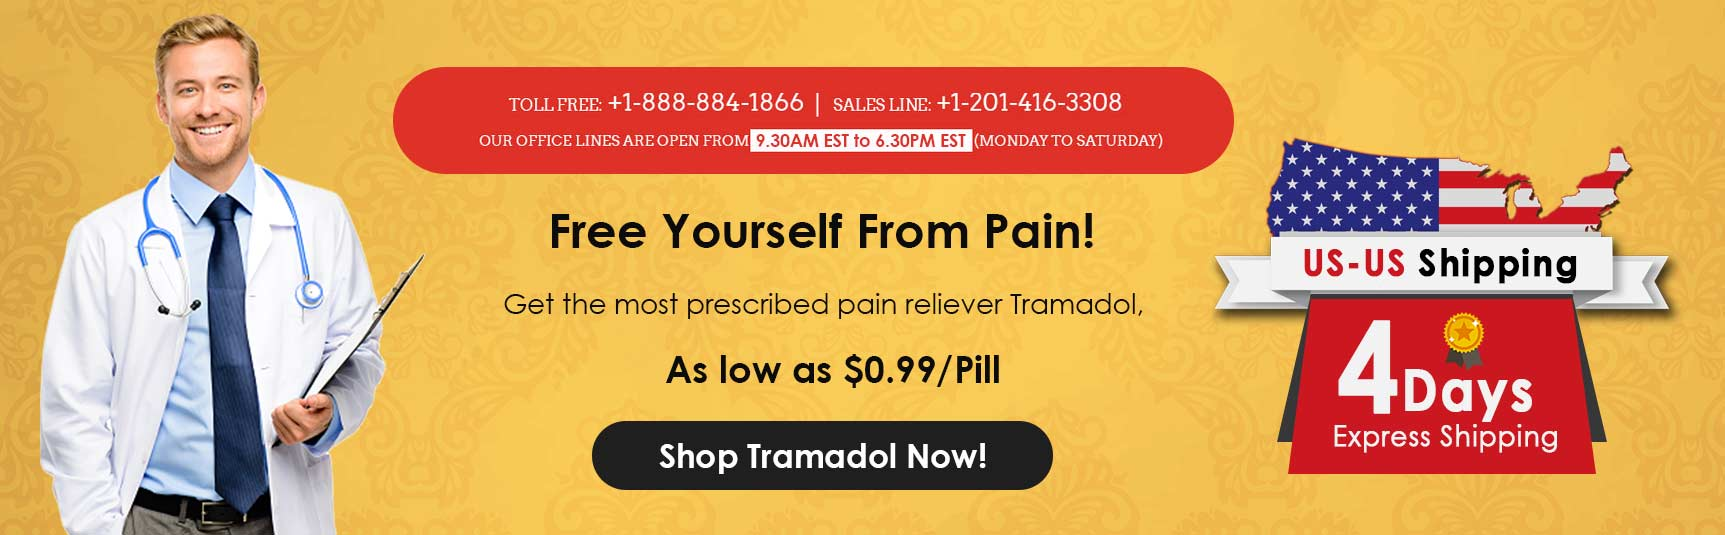 yourtramadol homepage banner